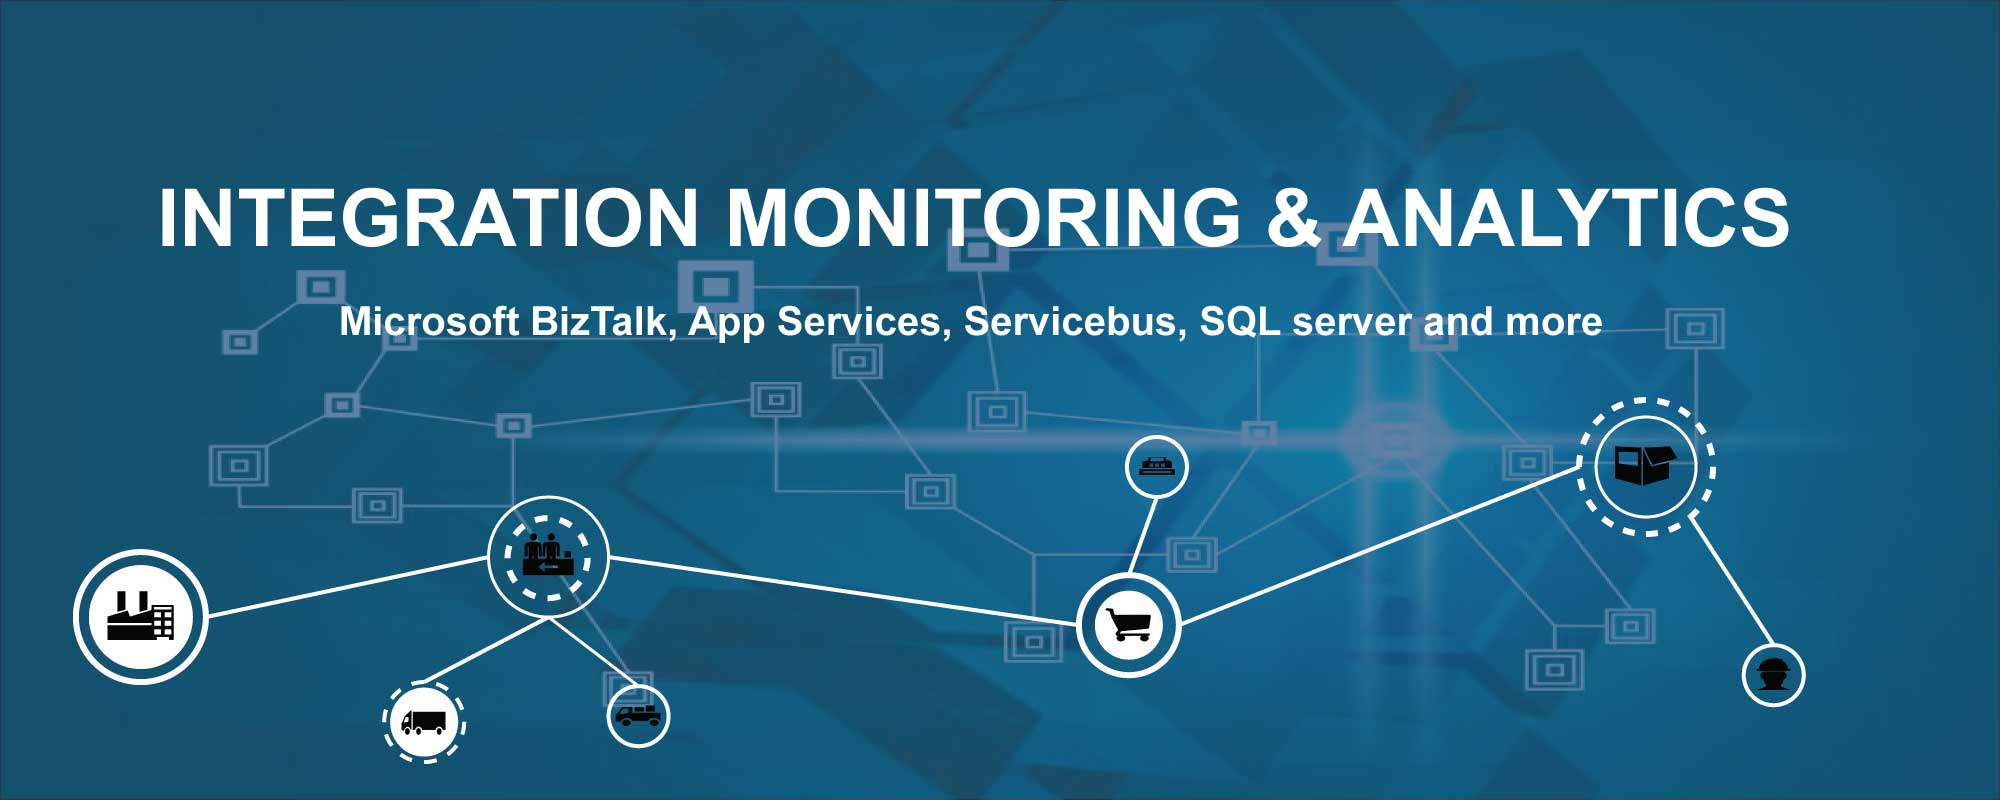 Automated monitoring & analytics for your integrations